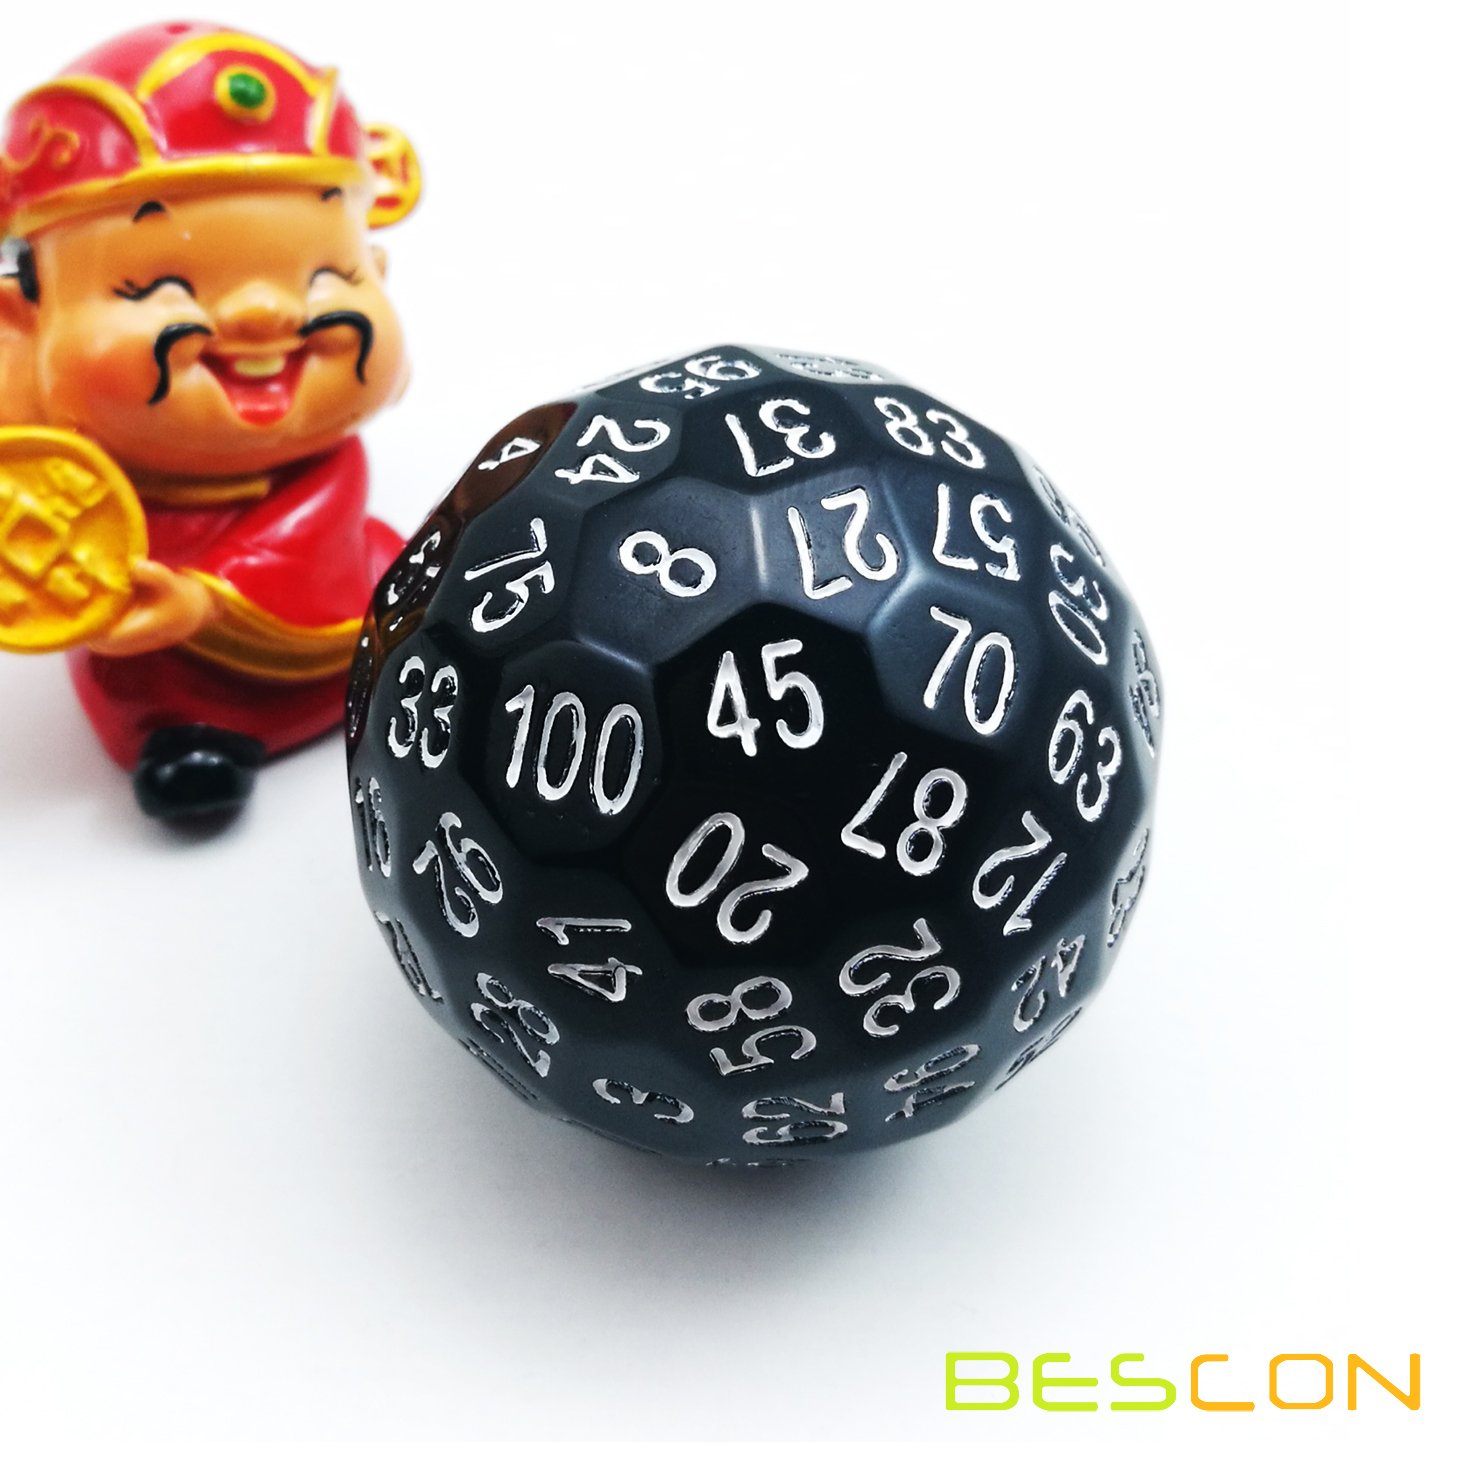 Bescon Polyhedral Dice 100 Sides Dice, D100 die, 100 Sided Cube, D100 Game Dice, 100-Sided Cube of Black Color